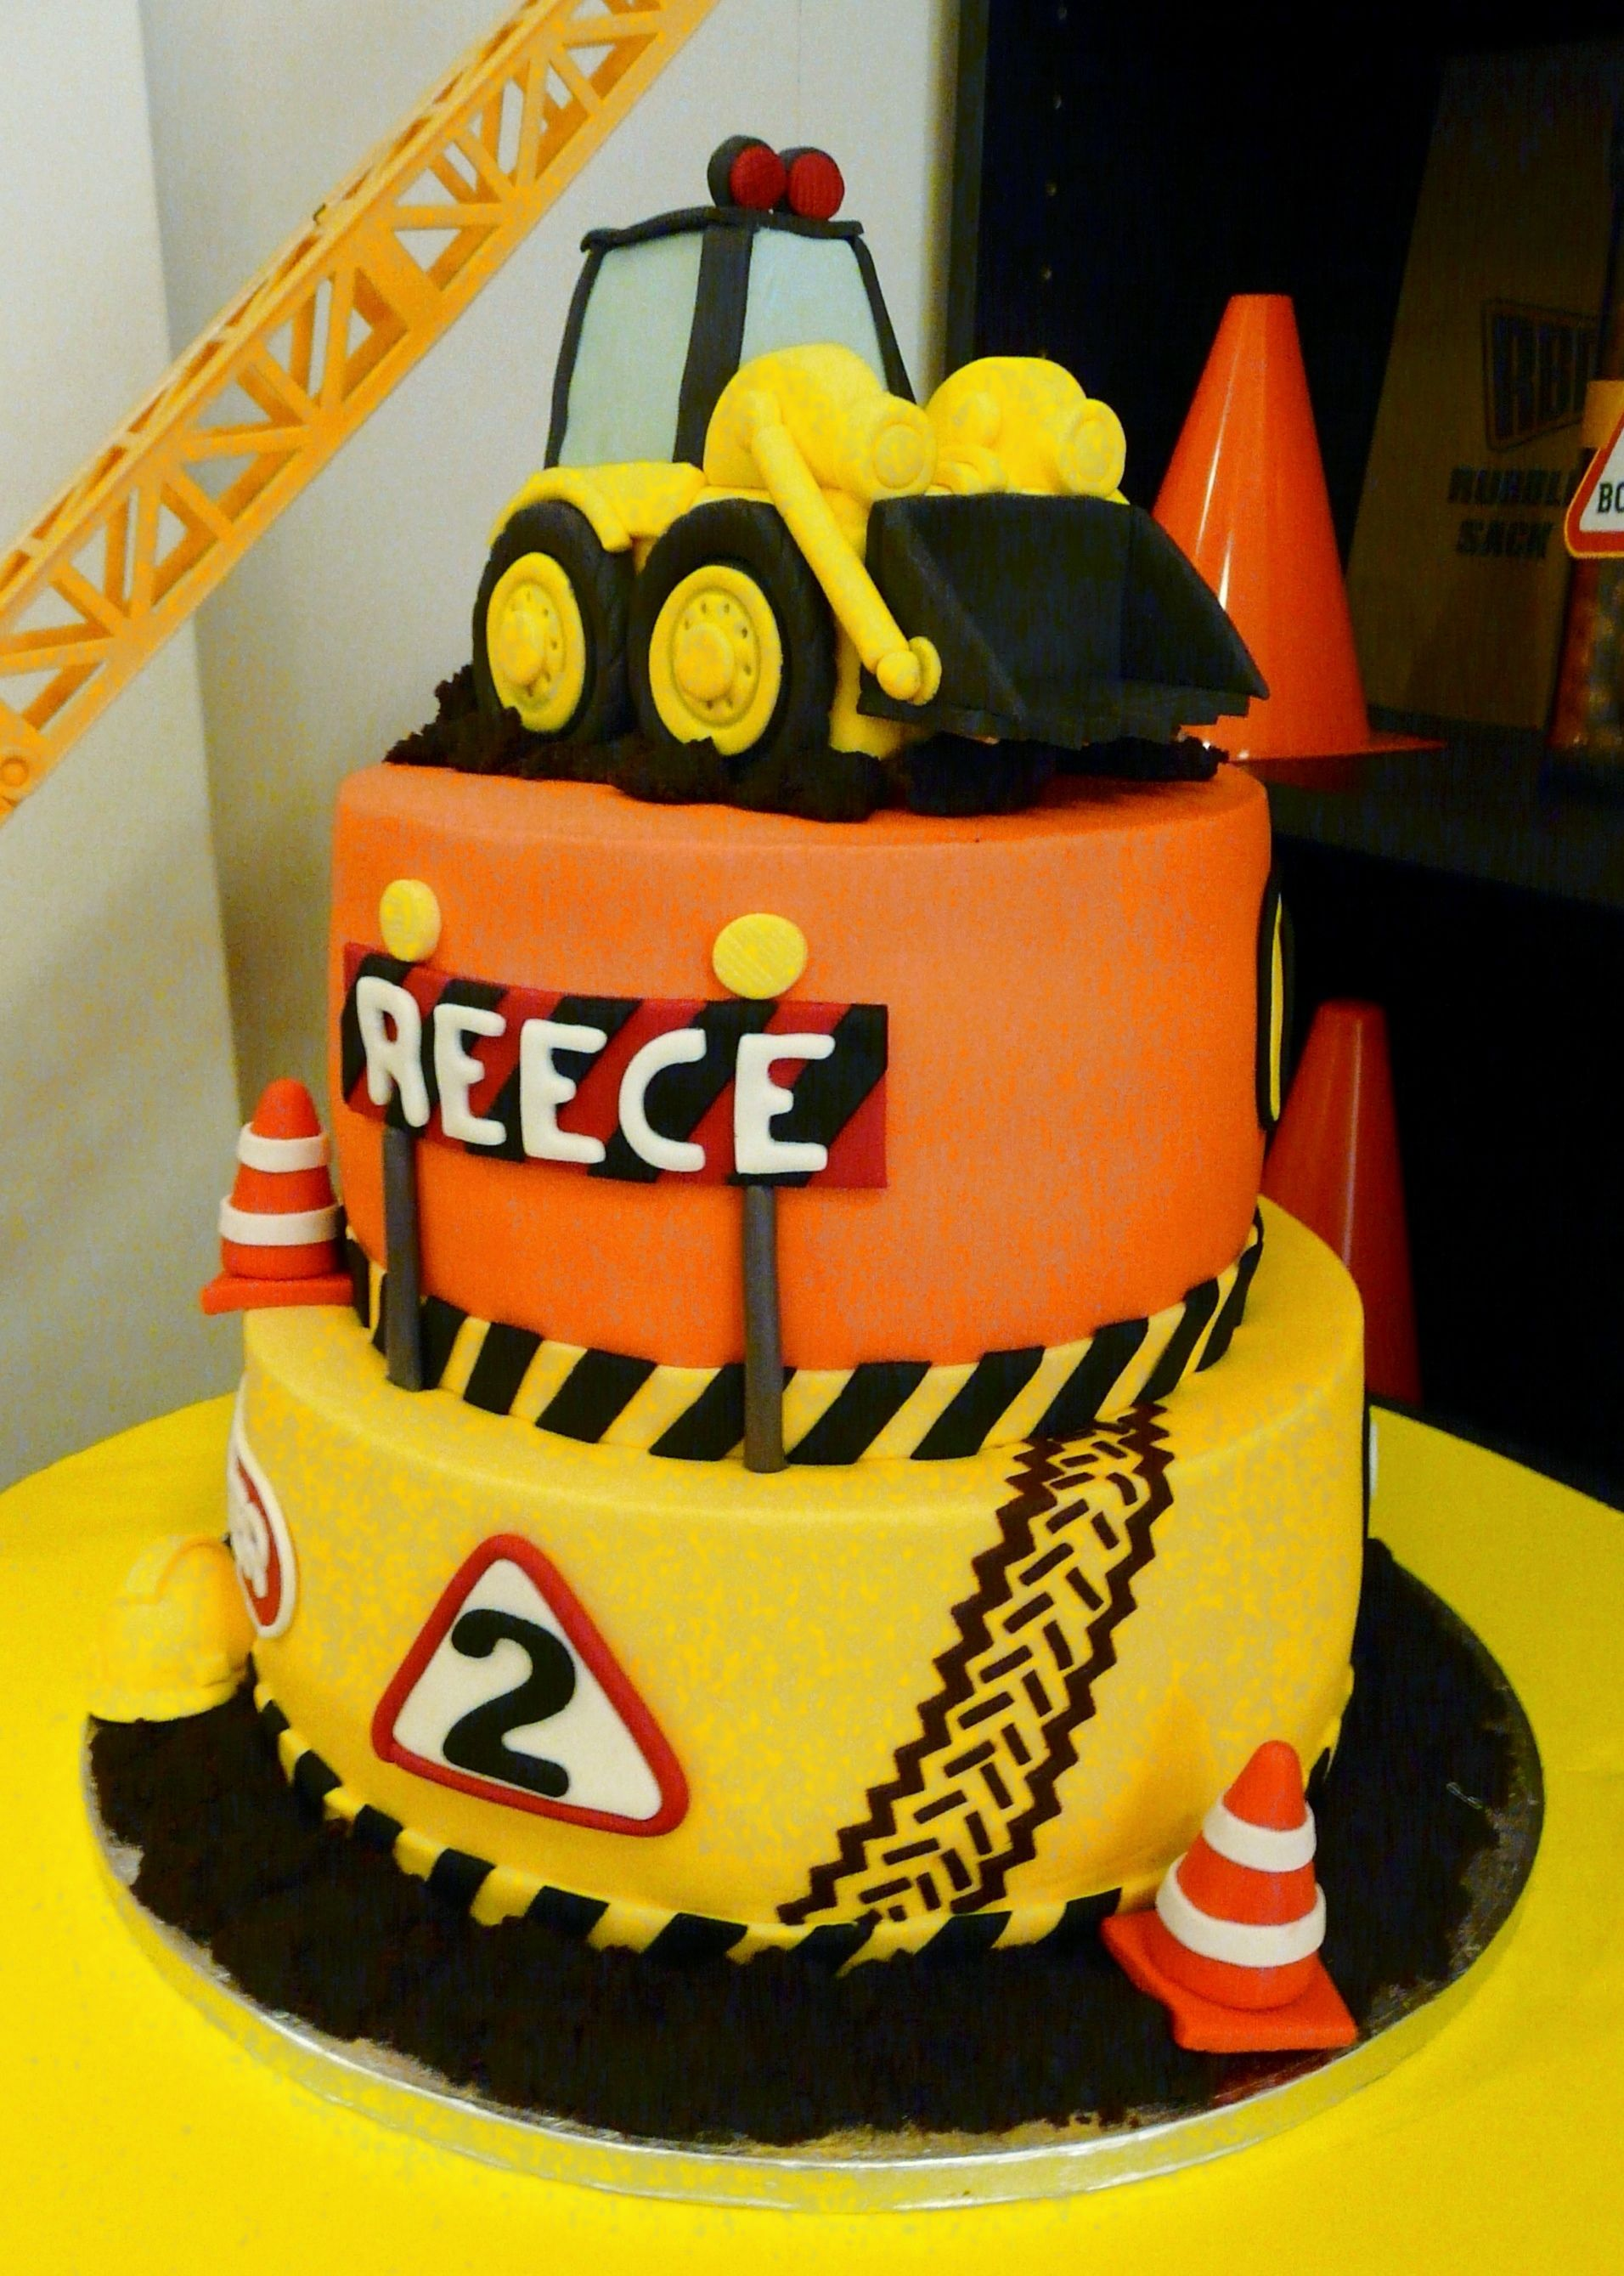 Phenomenal Reeces 2Nd Birthday Digger Party Dessert Table By Funny Birthday Cards Online Kookostrdamsfinfo